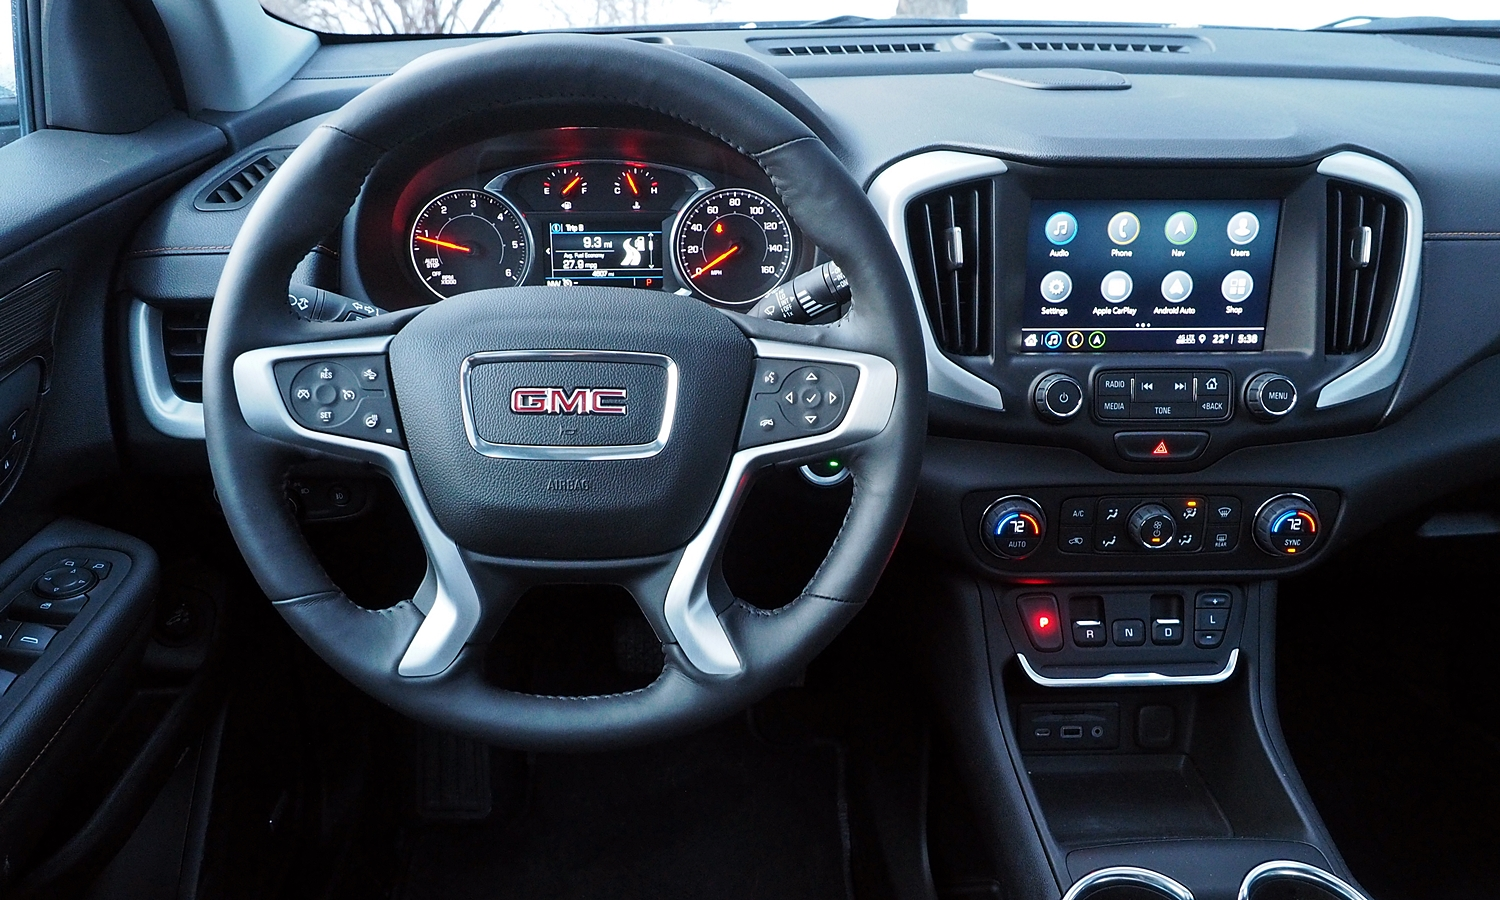 GMC Terrain Photos: 2018 GMC Terrain instrument panel